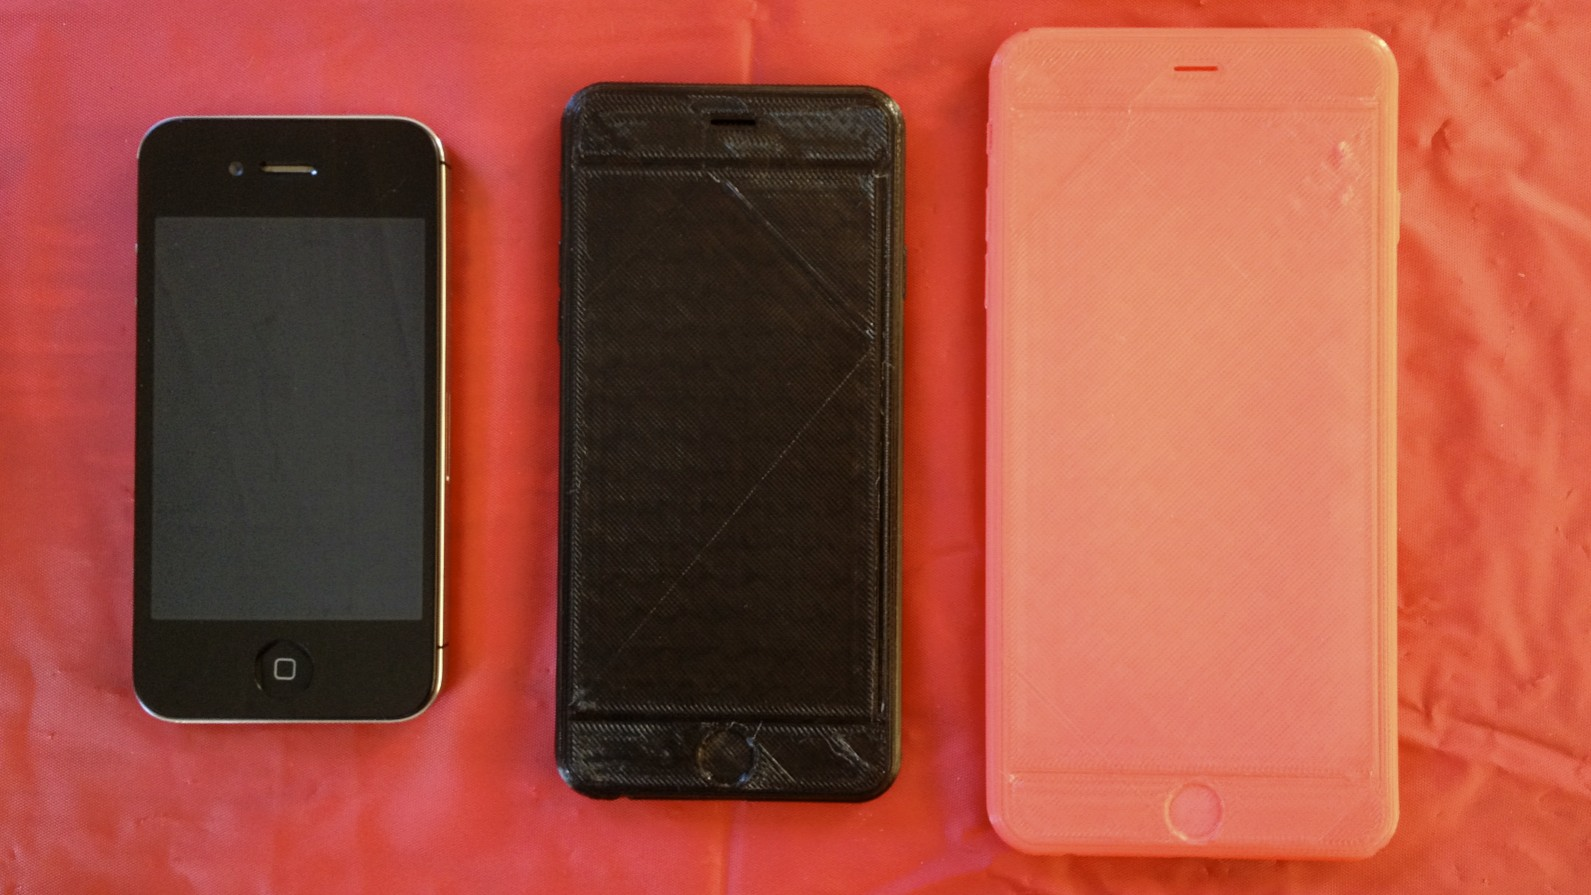 iPhone 4 compared to two prints of the 6 and 6 Plus.